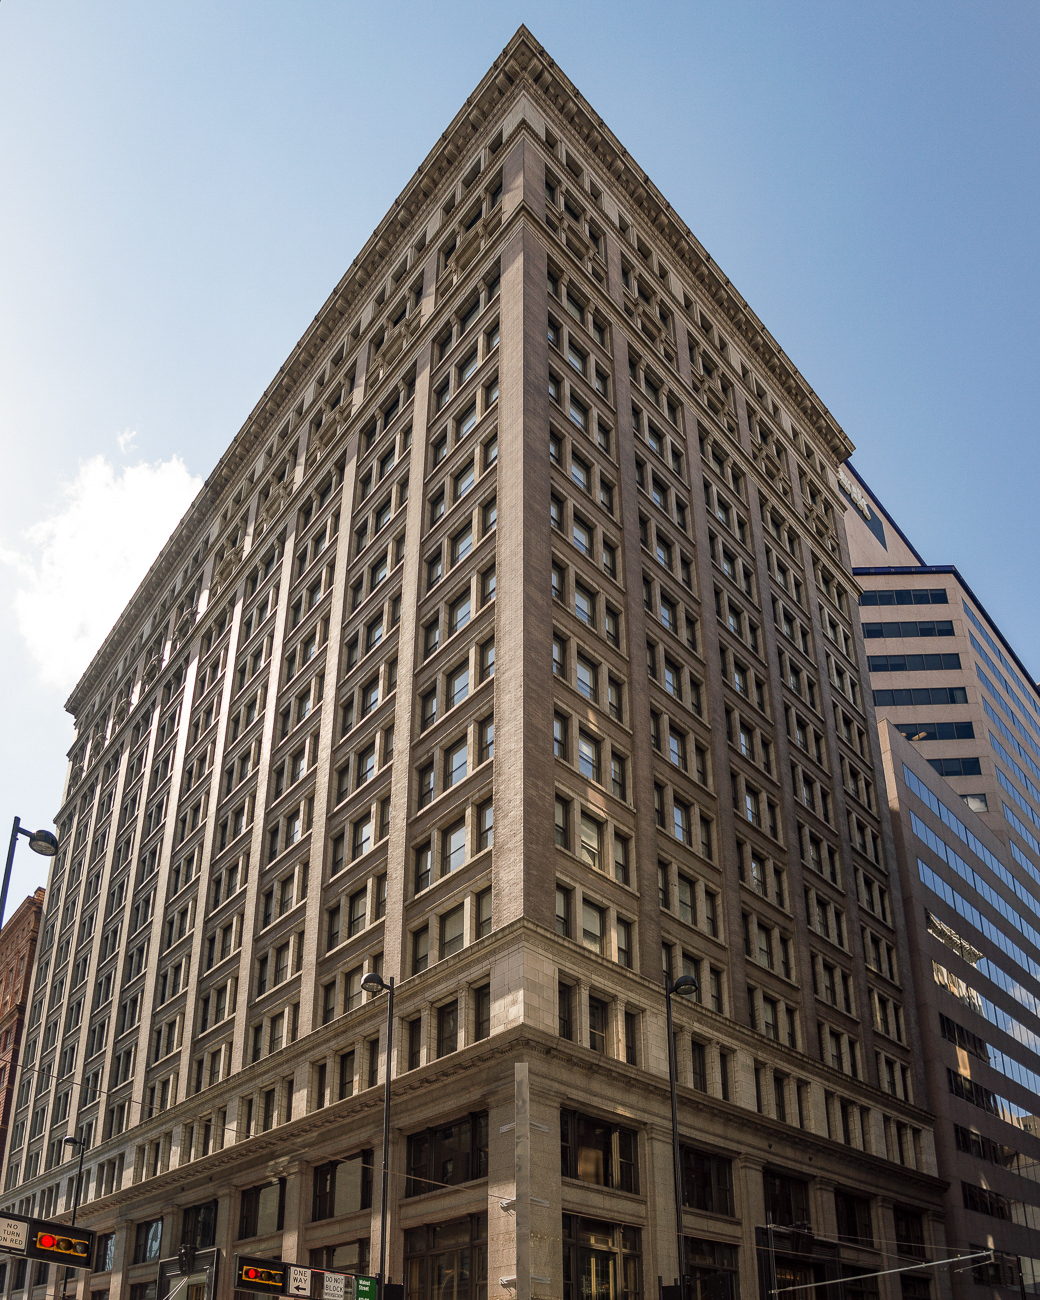 4th Street has multiple hotels: one of which is the Renaissance Hotel / ADDRESS: 36 E 4th Street / Image: Phil Armstrong, Cincinnati Refined // Published: 4.23.18